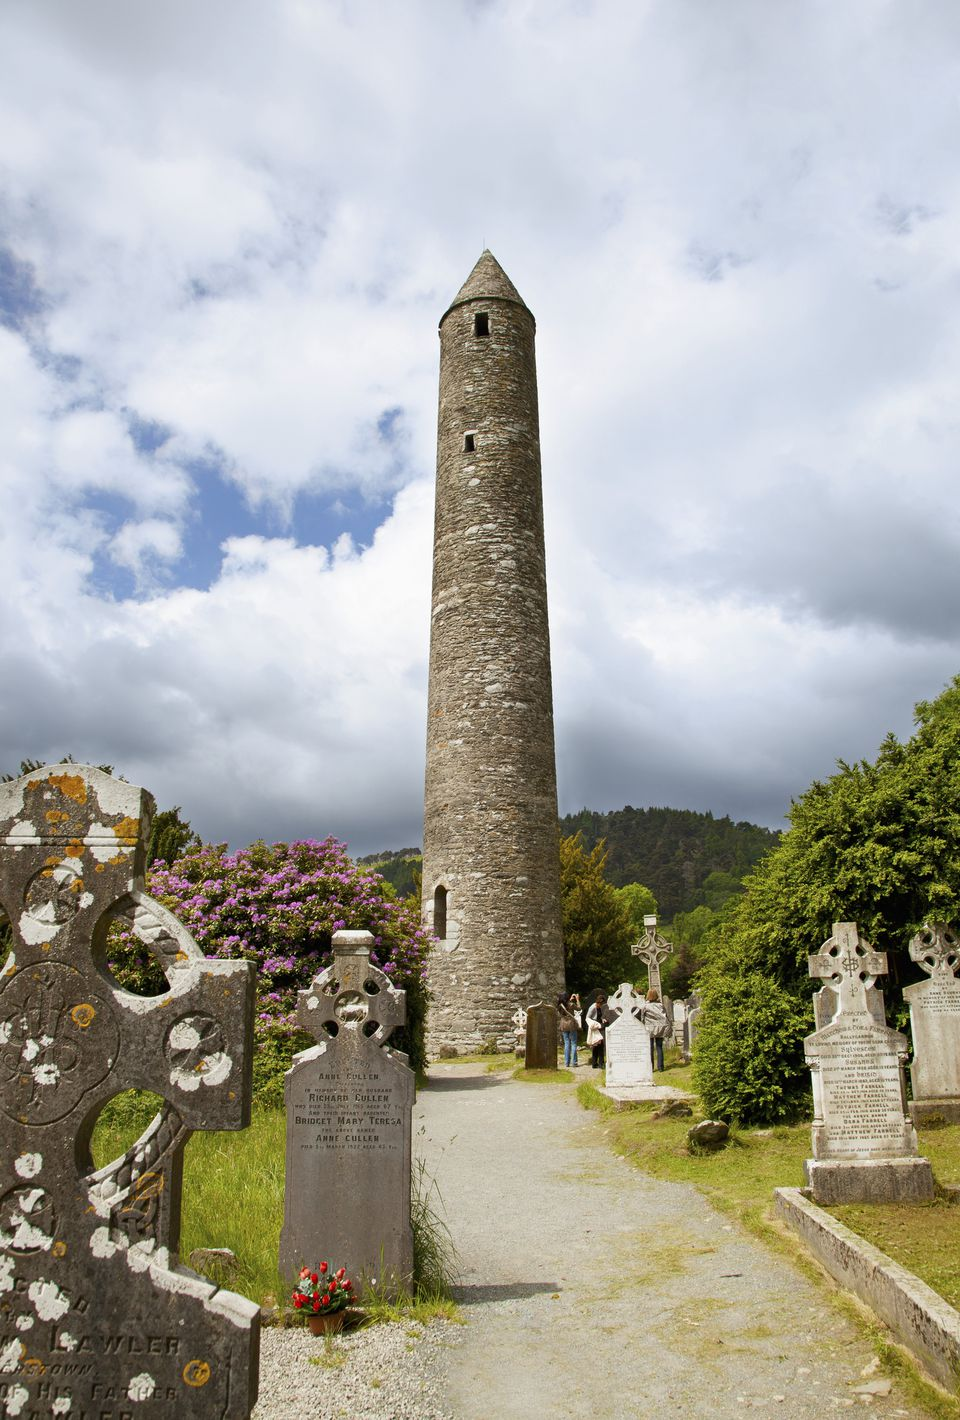 tombstones in a cemetery and a round tower on a 6th century monastic site